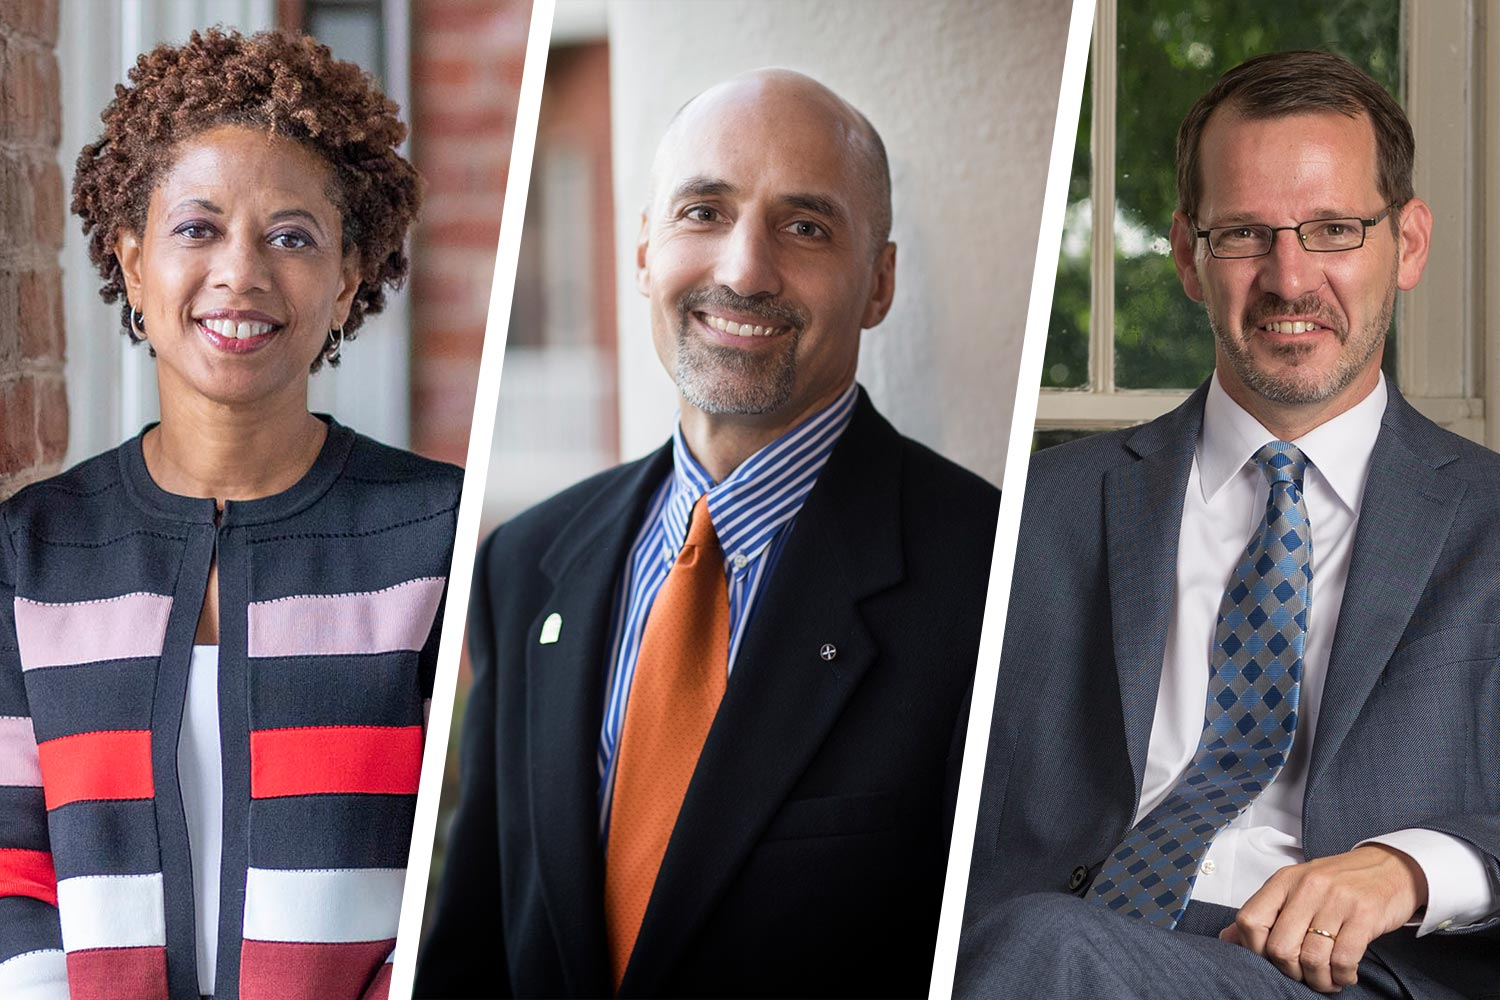 Left to right, Democracy Initiative co-director Melody Barnes, Miller Center director William Antholis and College of Arts & Sciences Dean Ian Baucom.